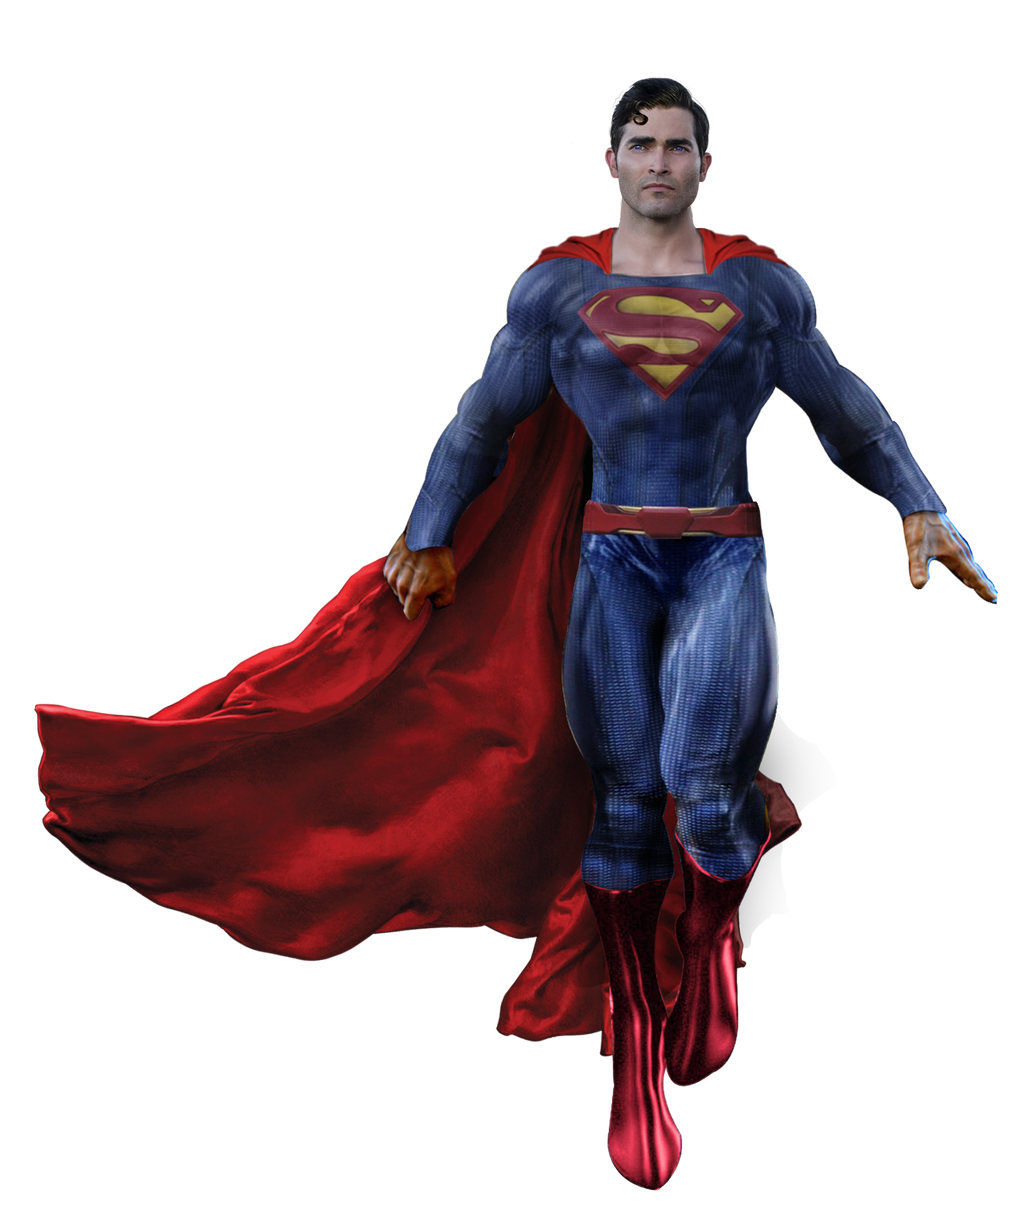 Tyler Hoechlin Superman Transparent by Spider-maguire on ...